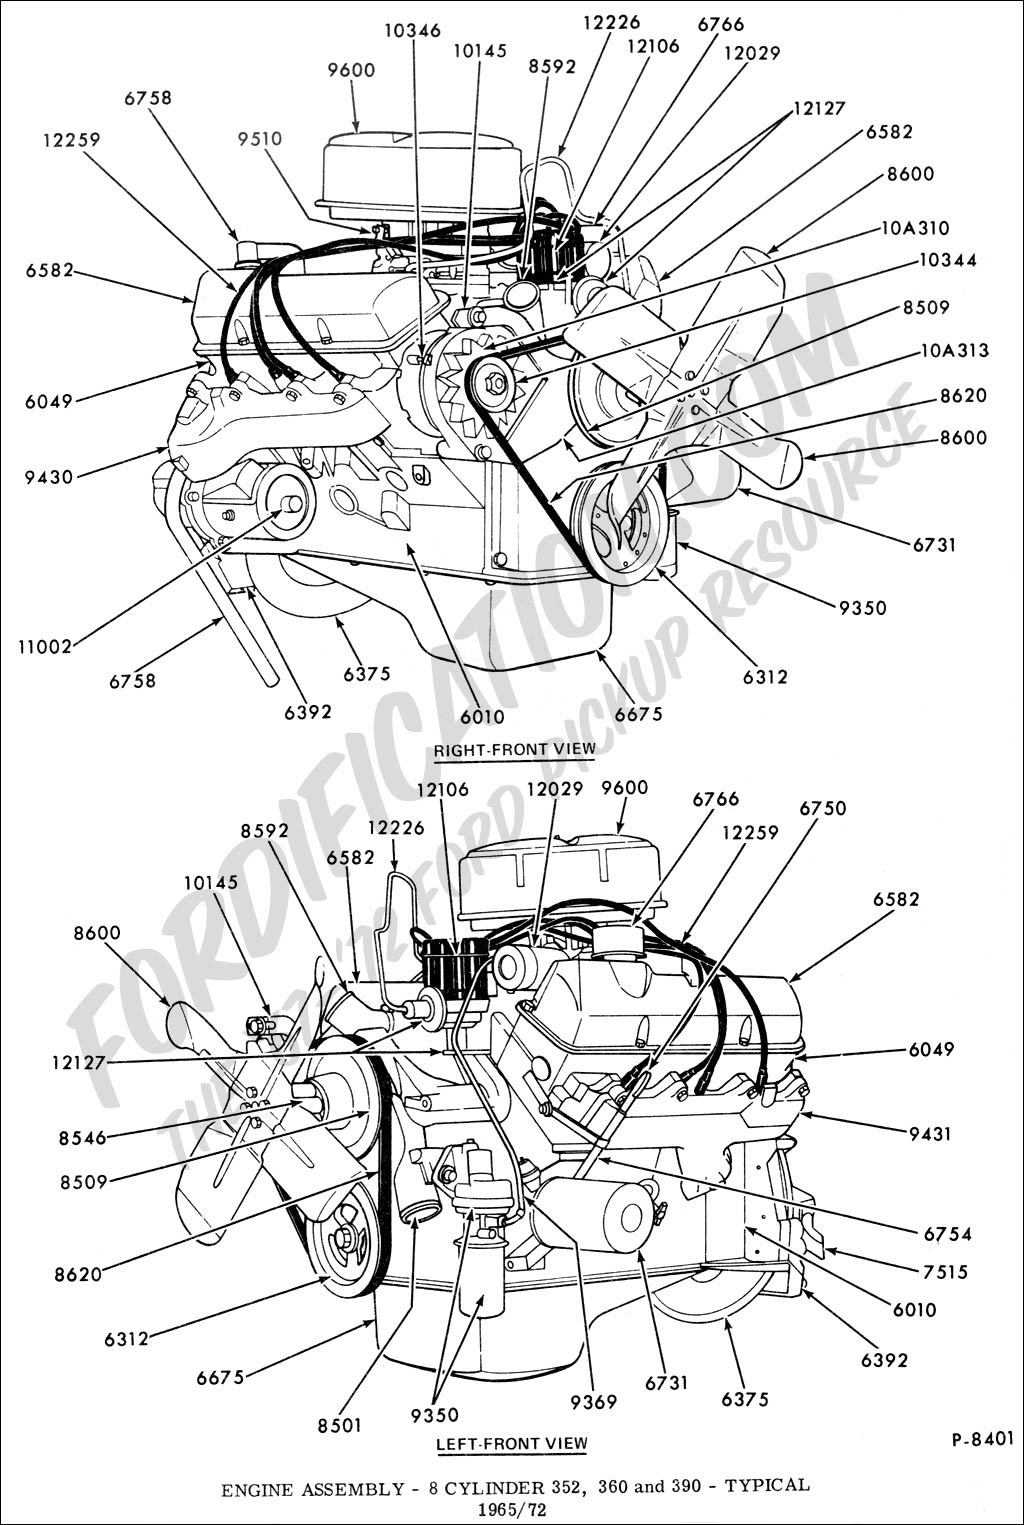 68 Ford 302 Engine Diagram Wiring Library Dodge 360 1969 Get Free Image About 1970 Boss Specifications 1968